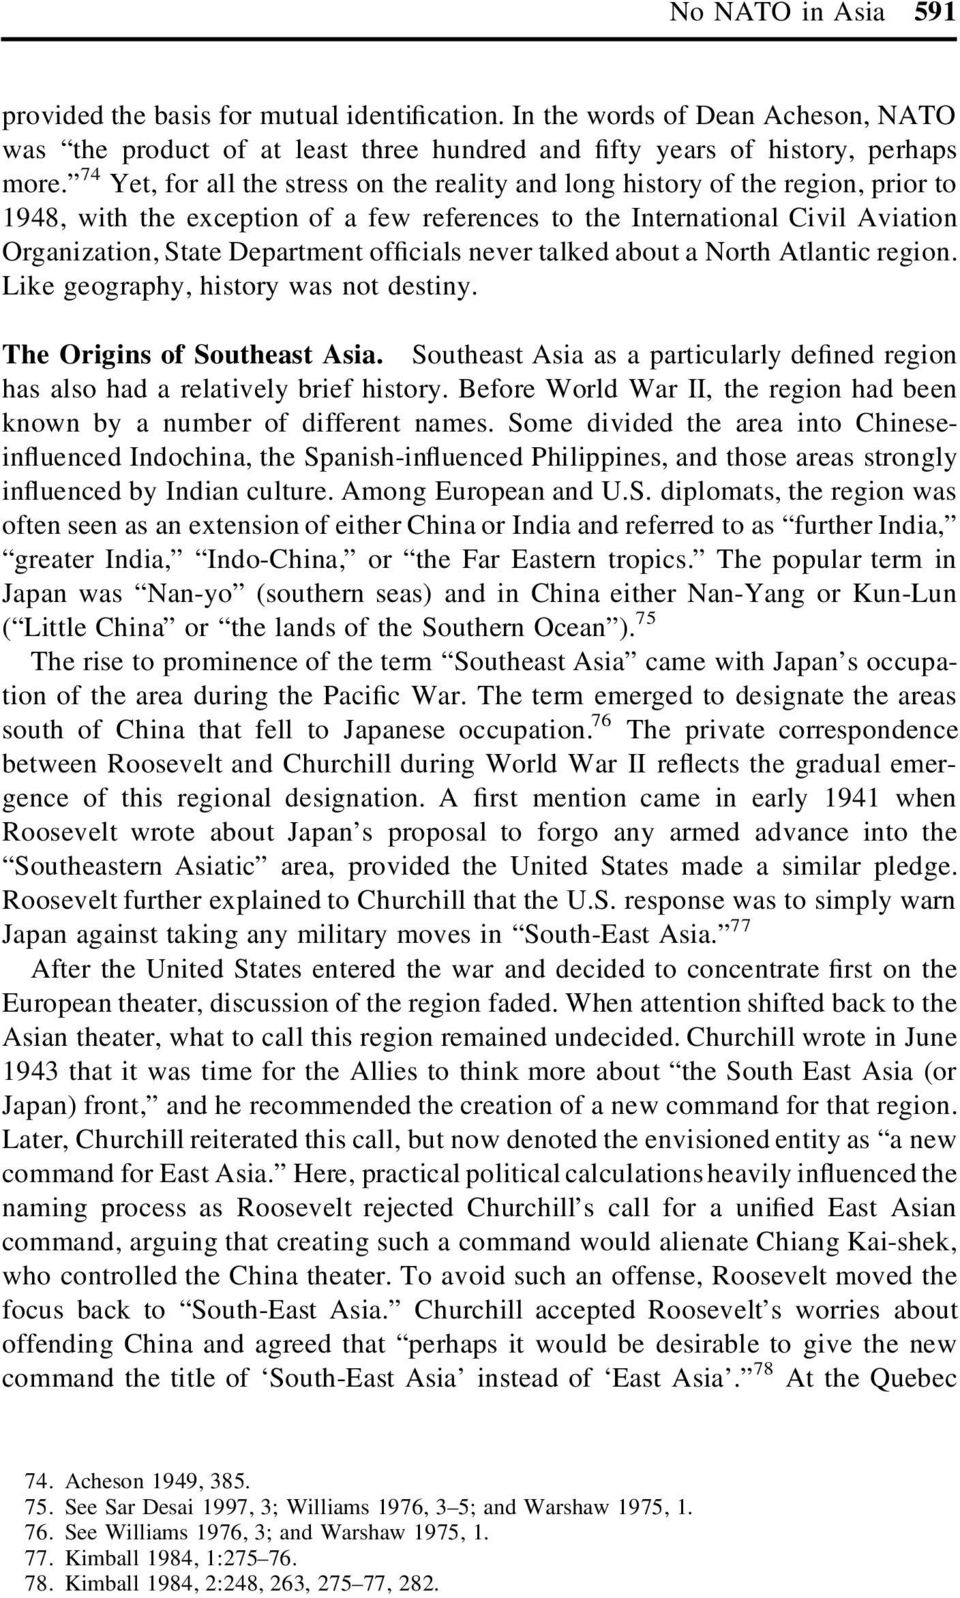 cials never talked about a North Atlantic region. Like geography, history was not destiny. The Origins of Southeast Asia.